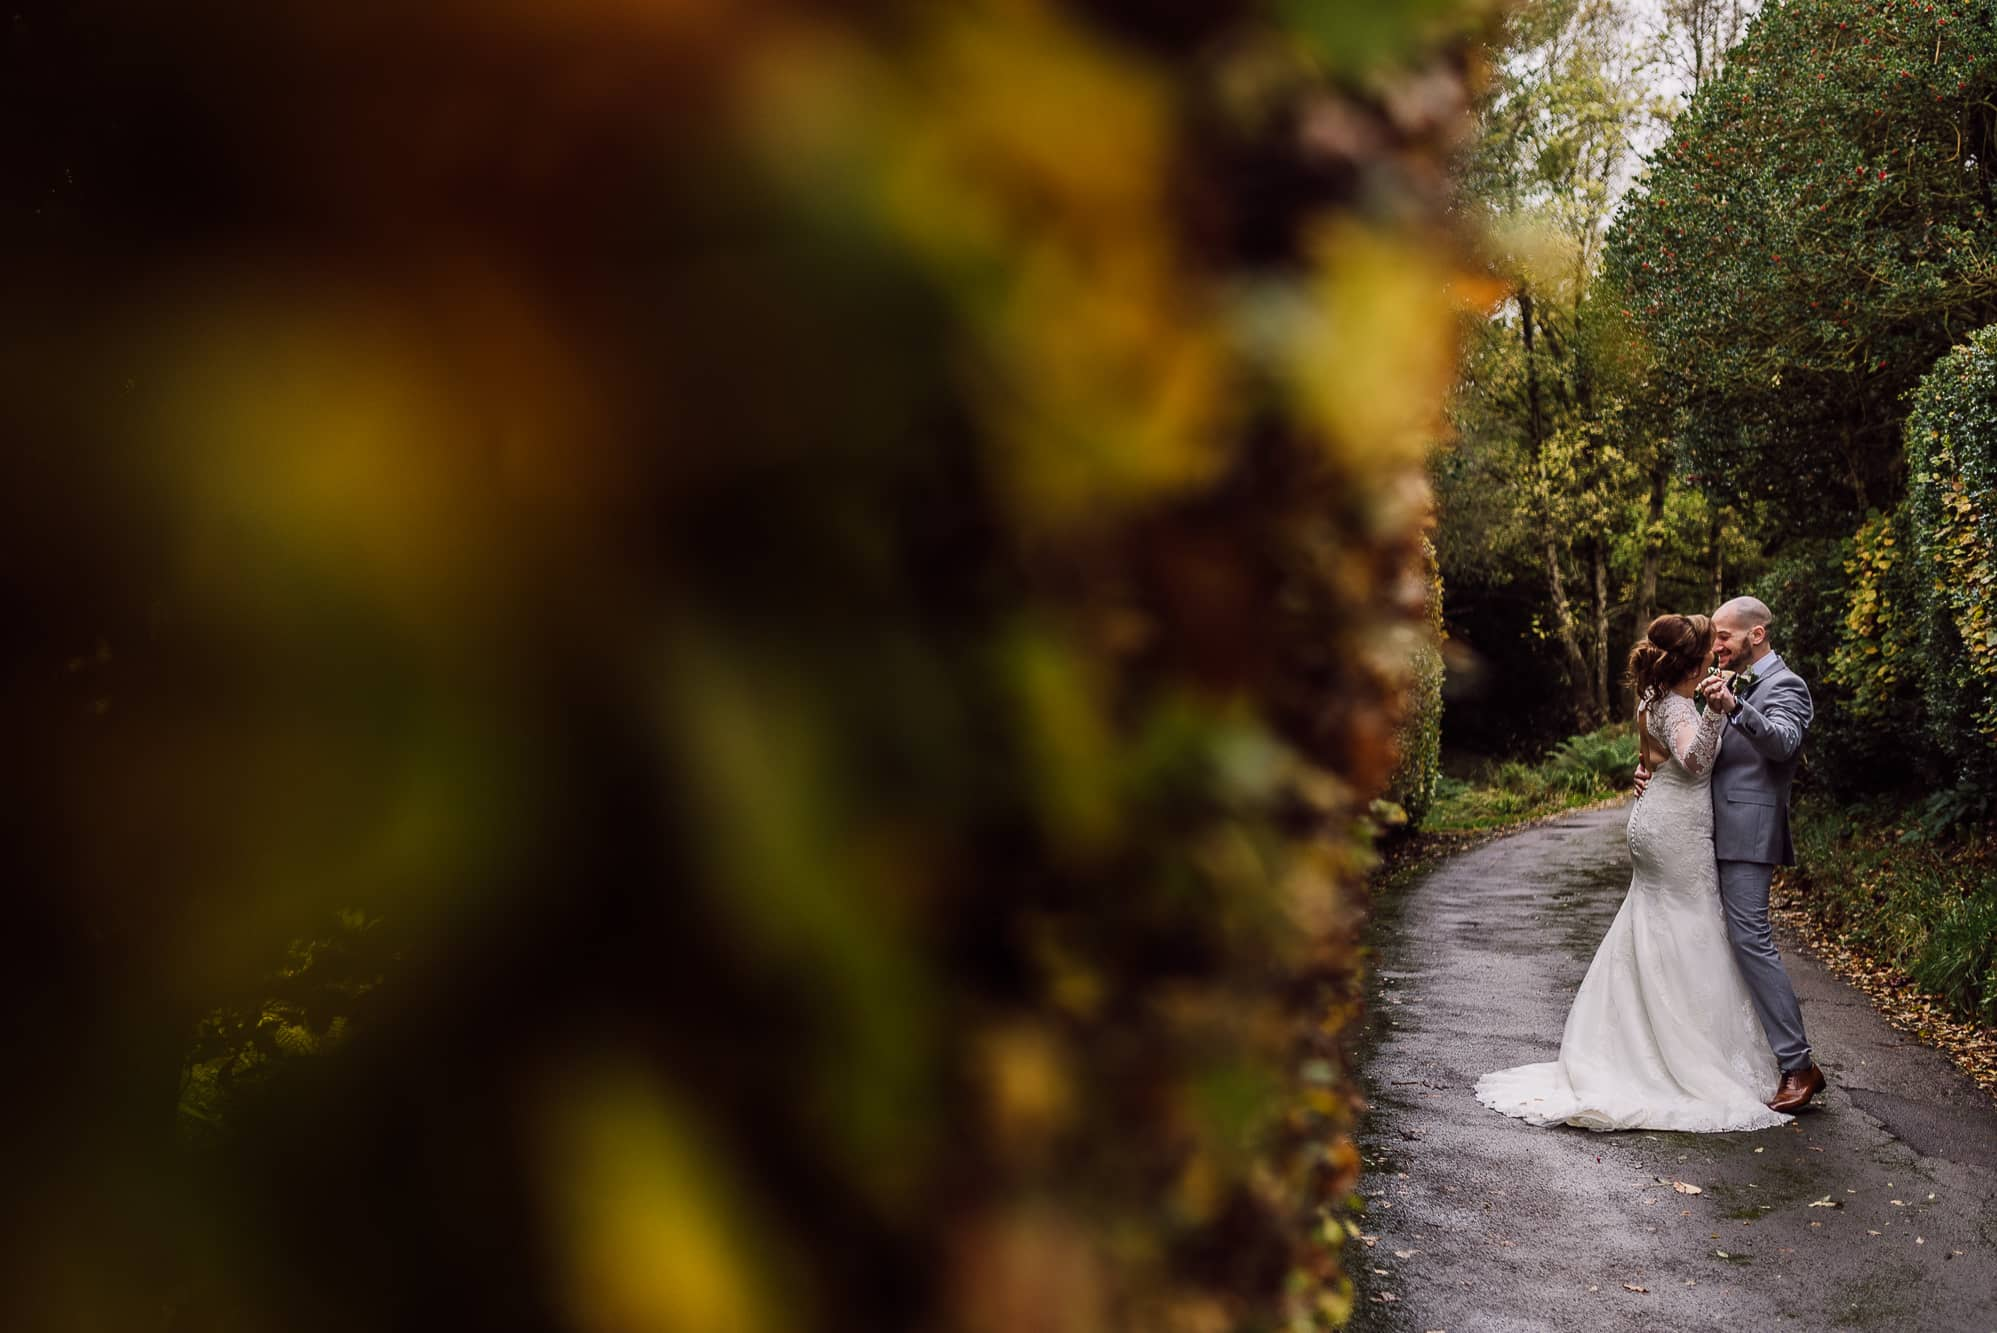 Bride and groom walking down the road at Hilltop Country House